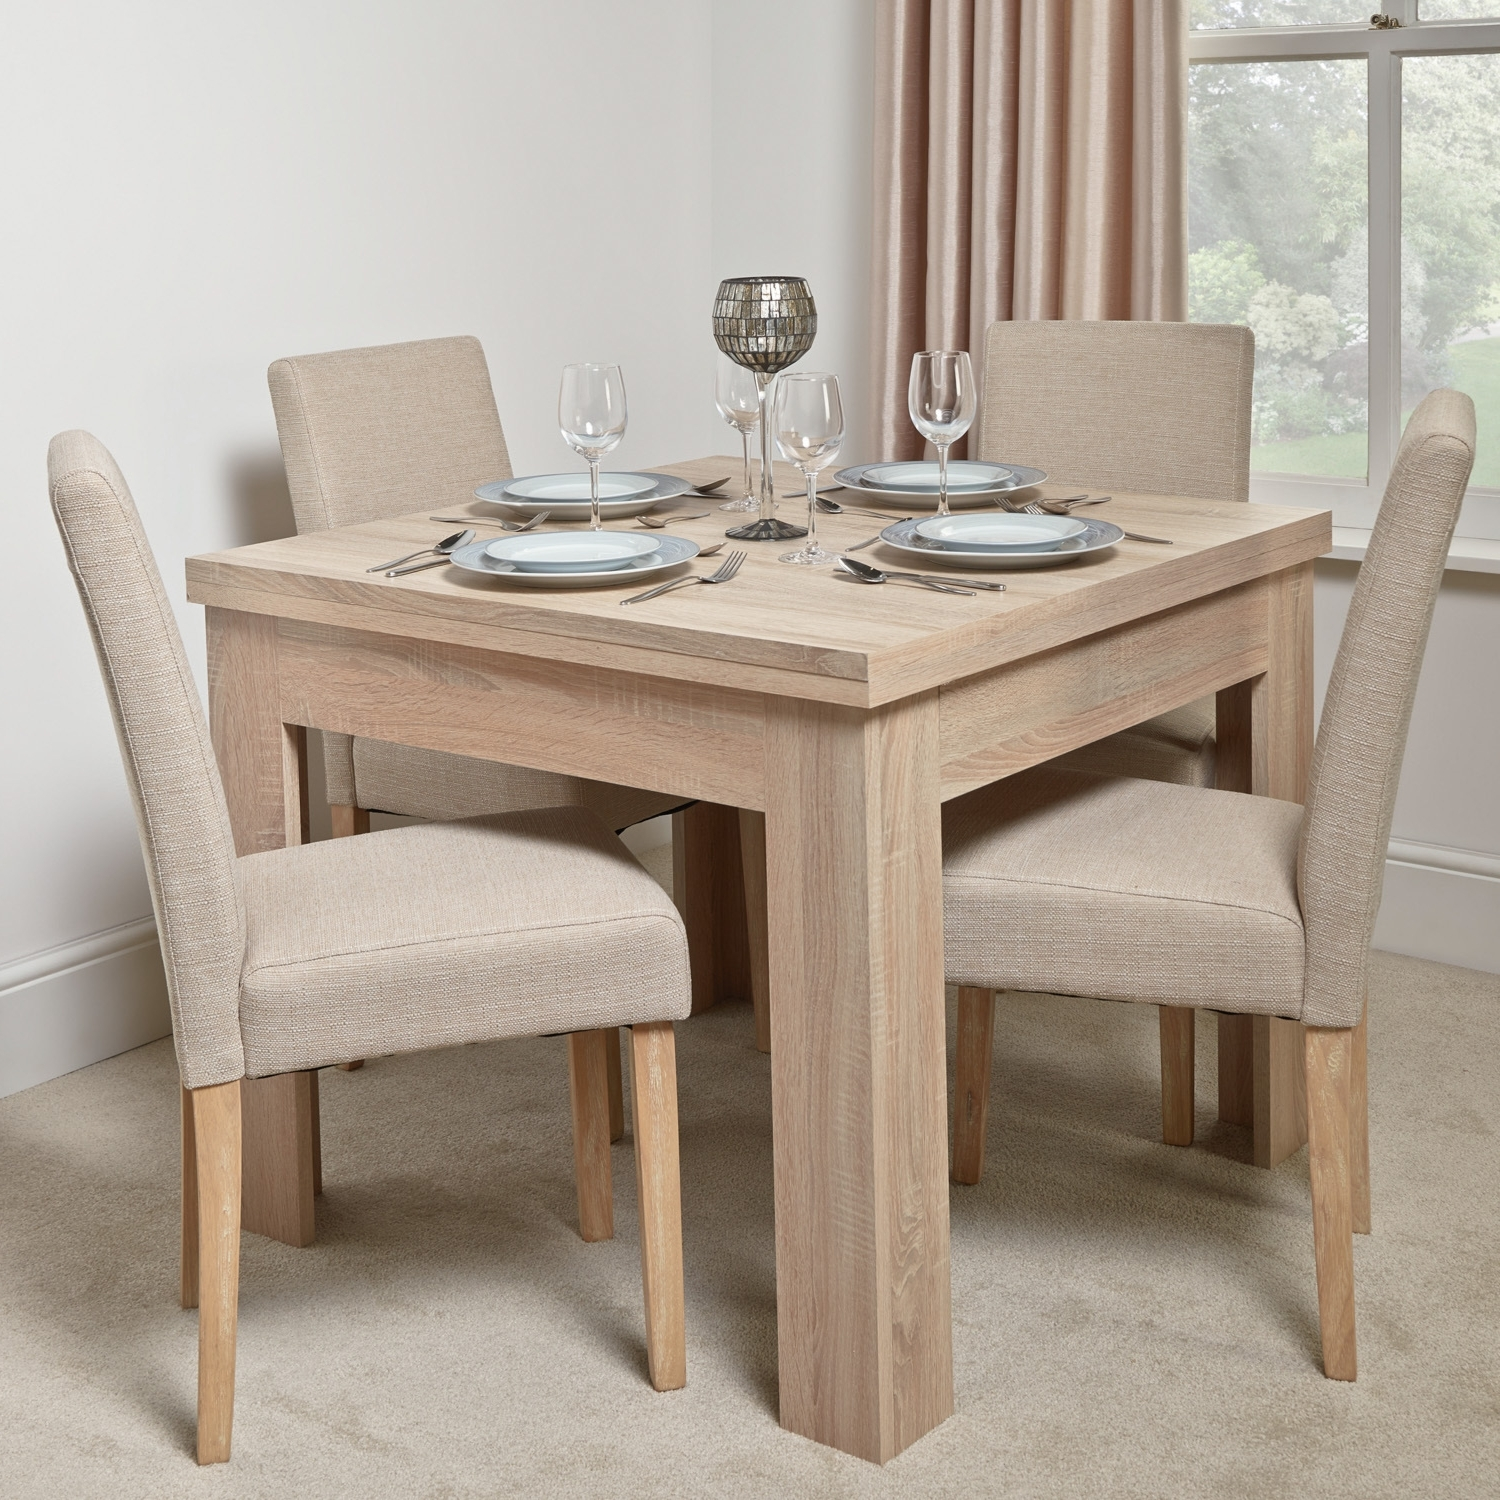 Extendable Dining Tables With 6 Chairs in Famous Calpe Flip Extending Dining Table